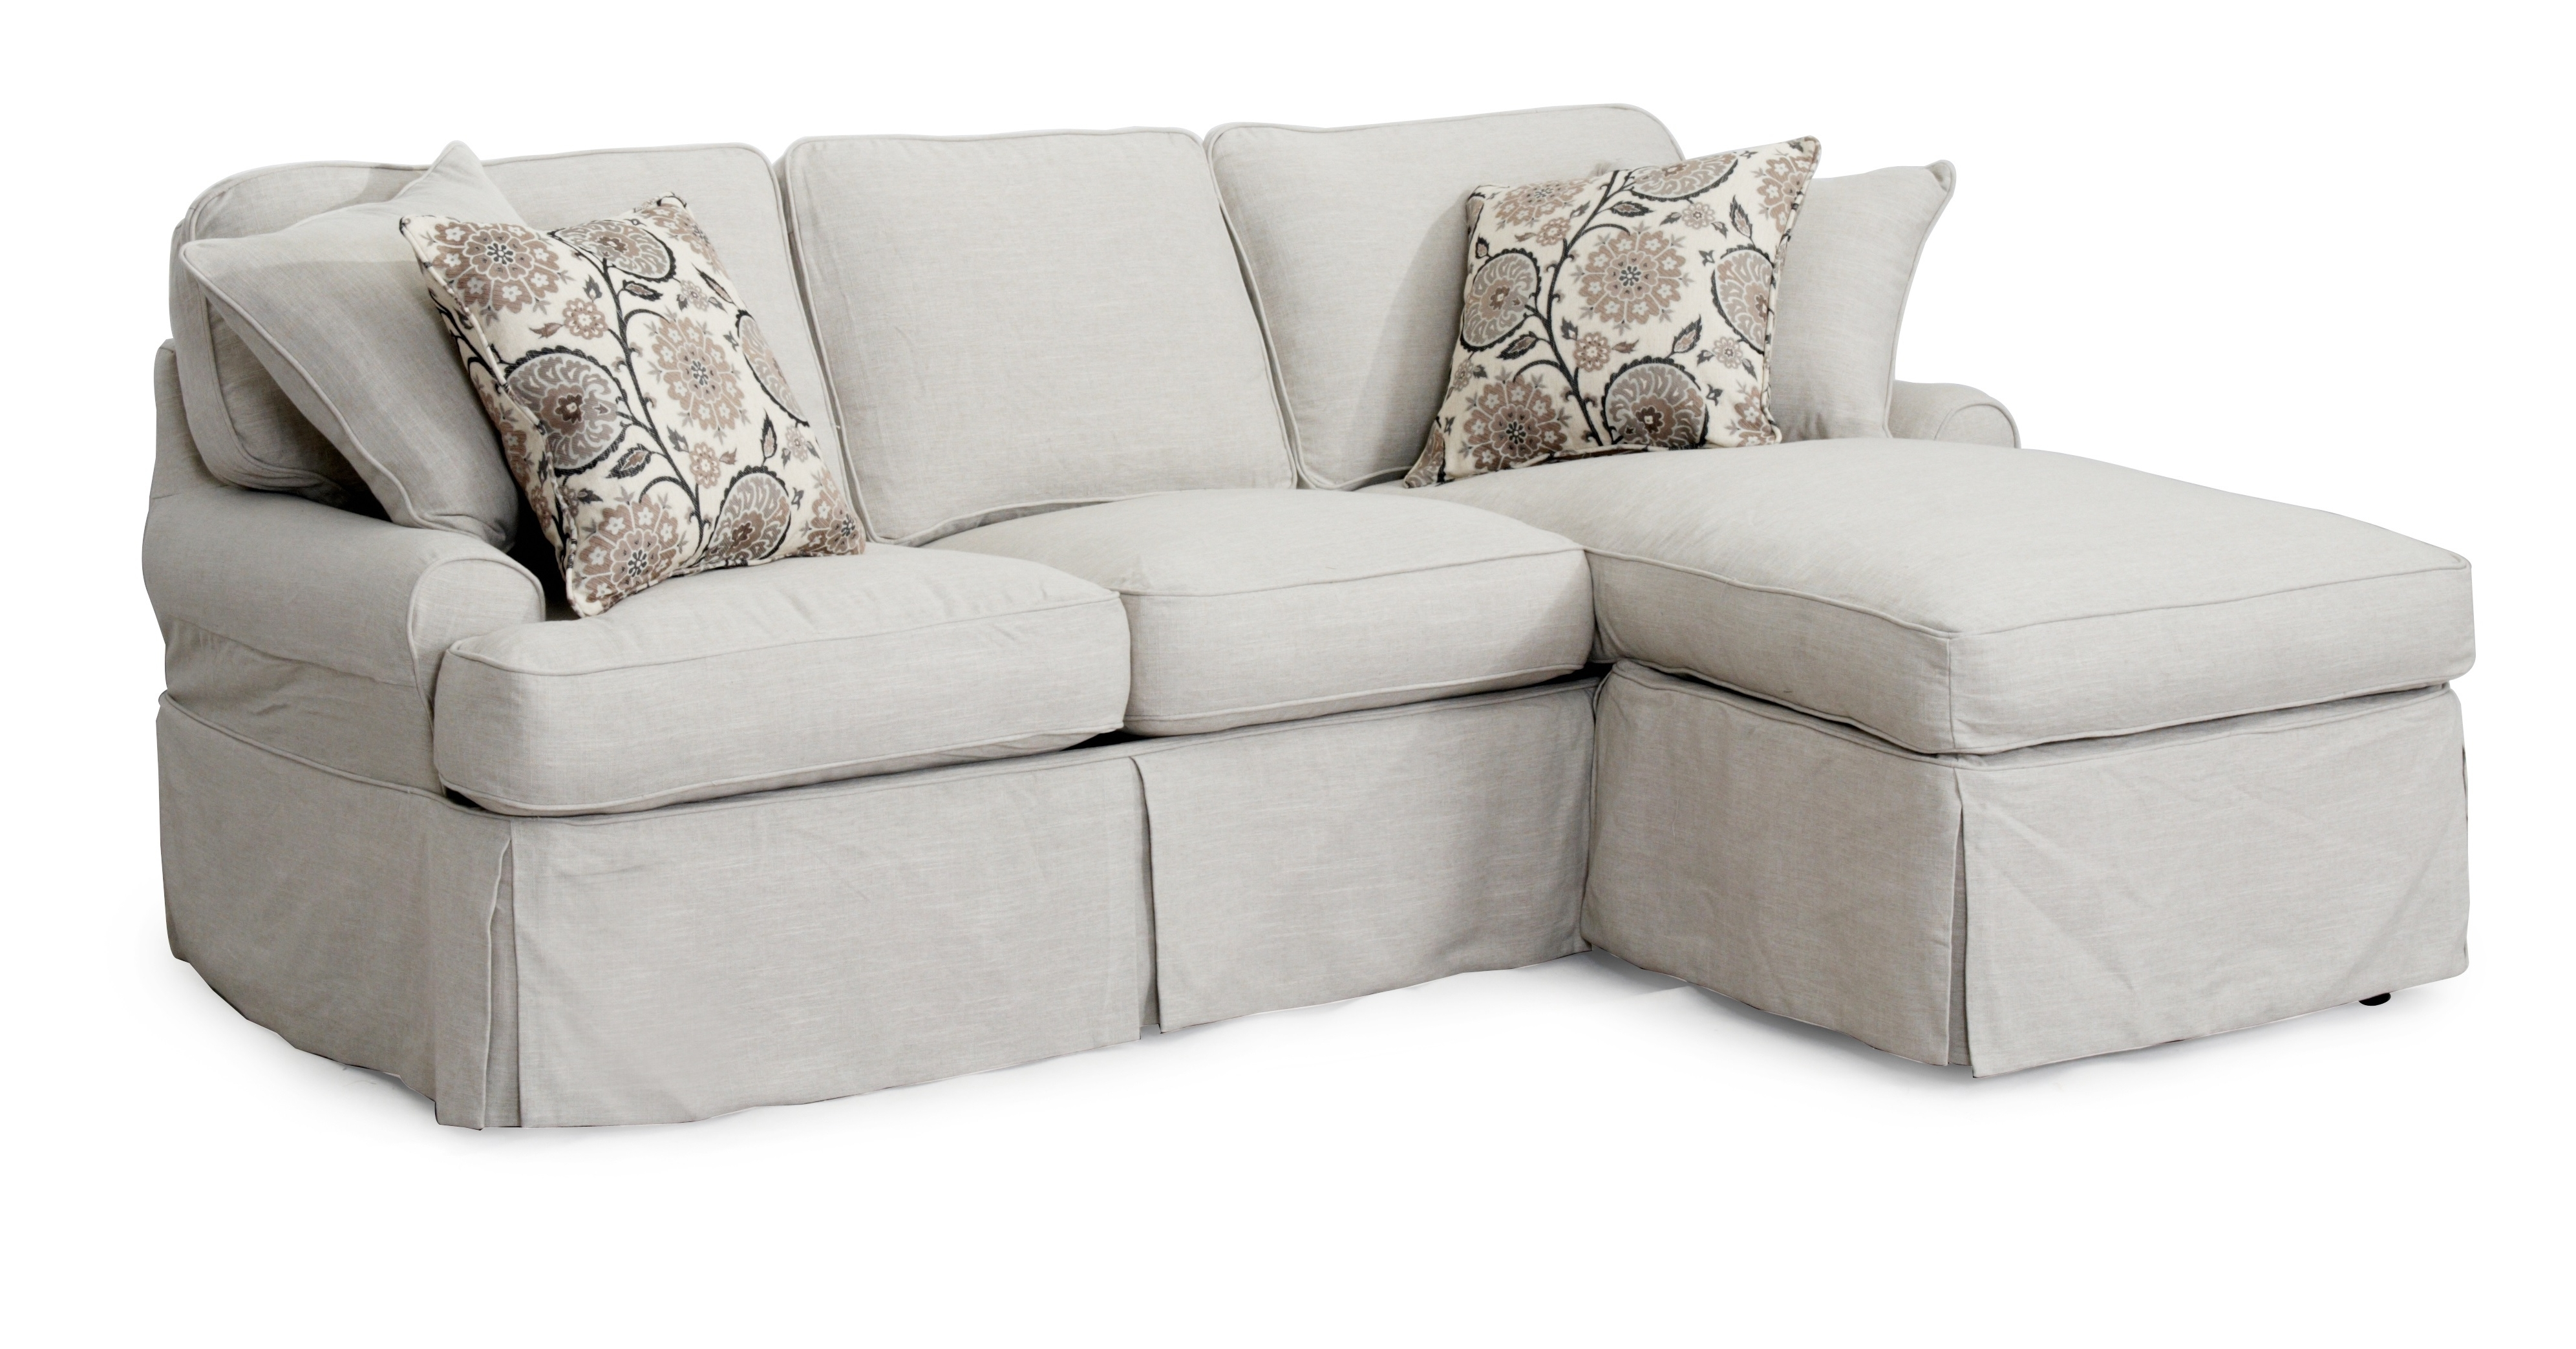 Furniture: Protecting Furniture From Kids With Sofa Arm Covers In Recent Chaise Sofa Covers (View 11 of 15)